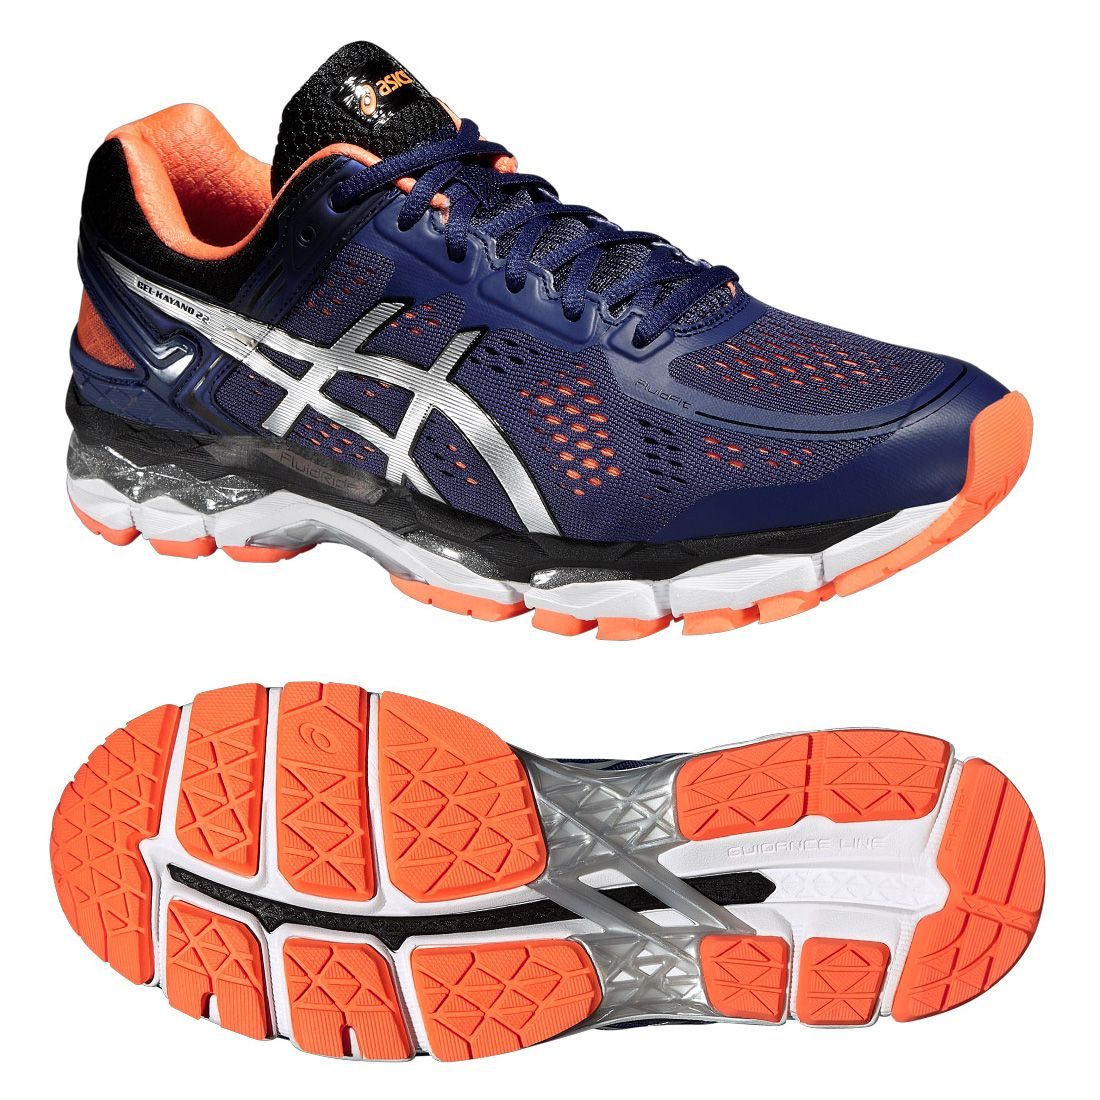 Asics Motion Control Stability Running Shoes